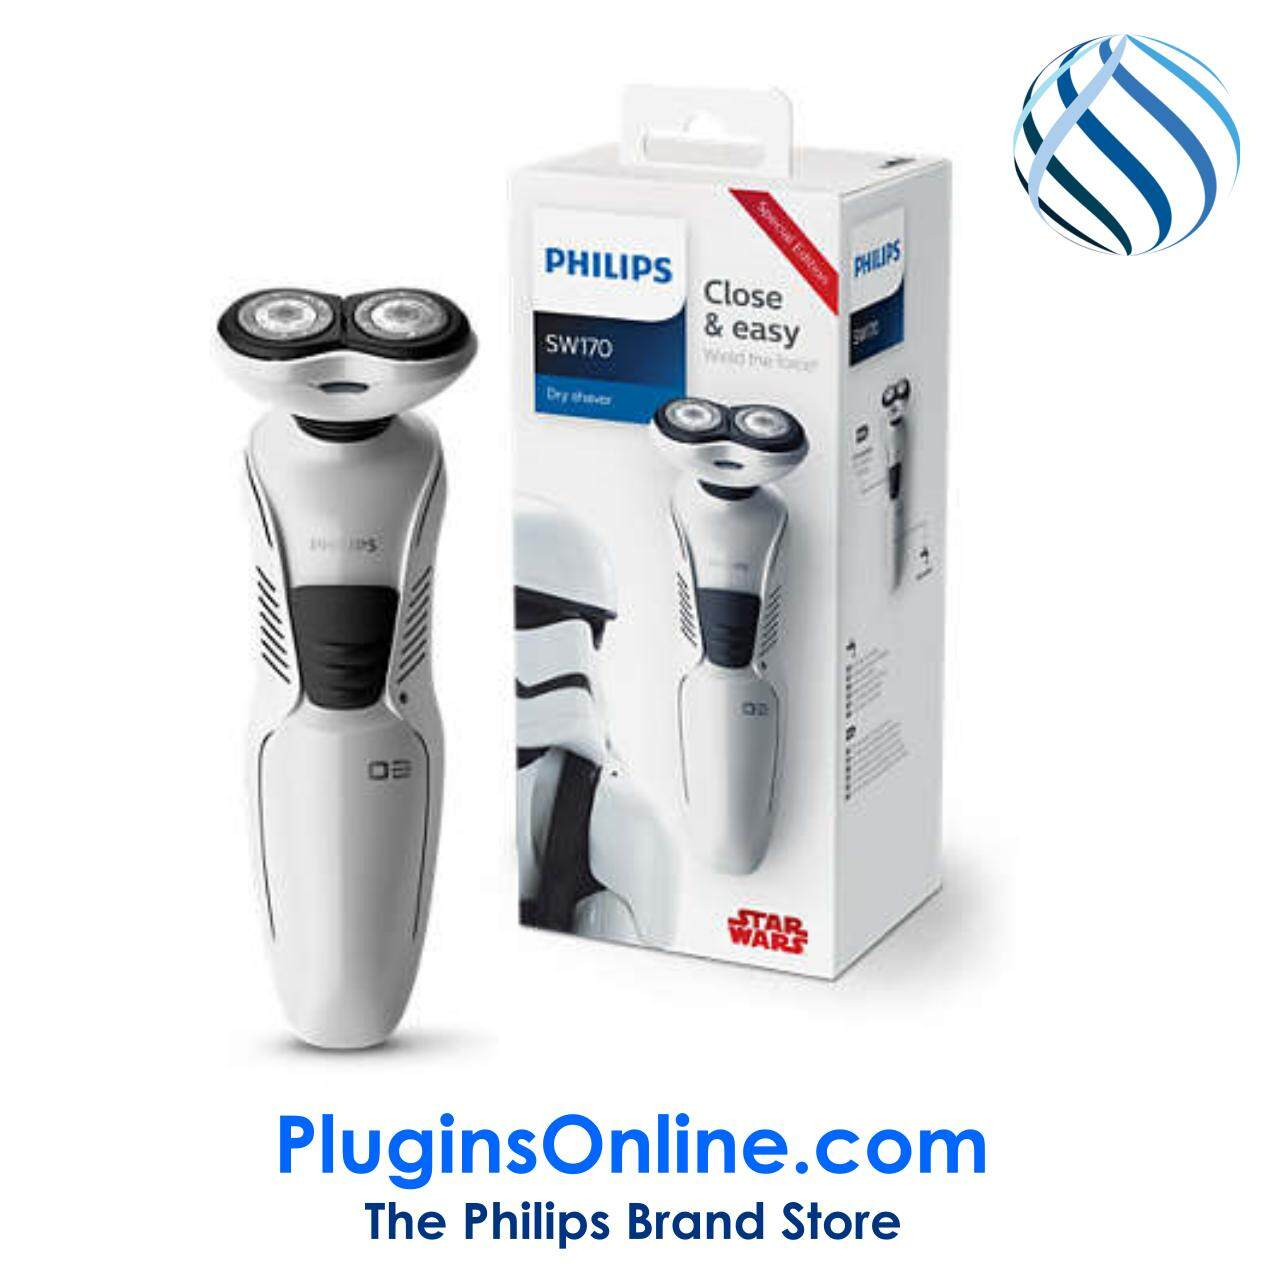 Philips SW170/04 Star Wars Special Edition Shaver (SW170)